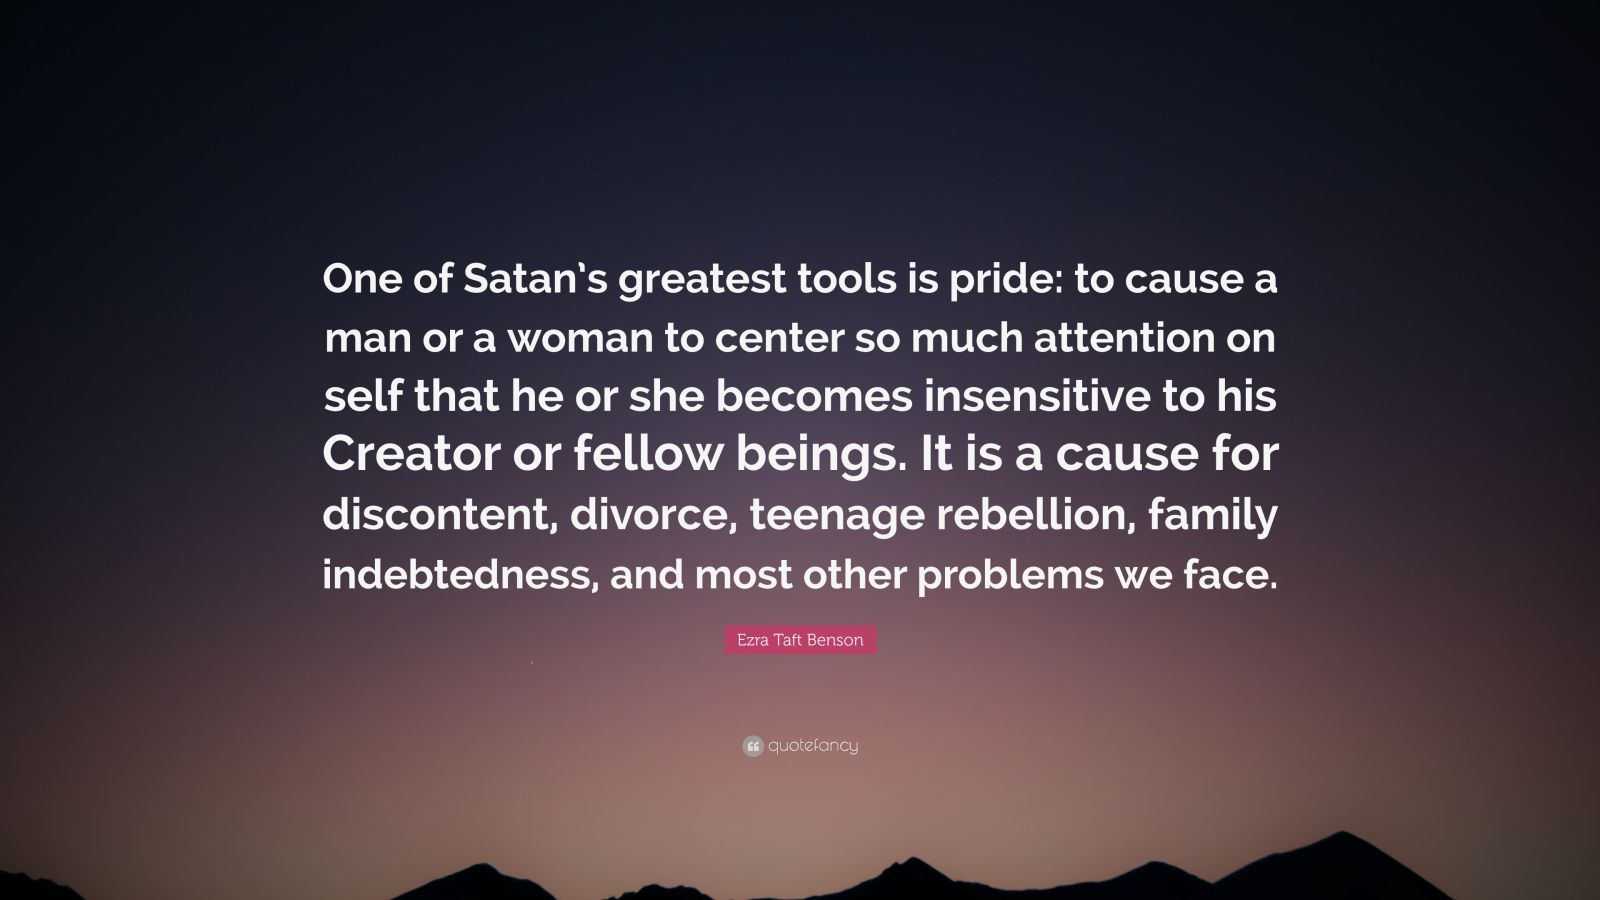 "Ezra Taft Benson Quote: ""One of Satan's greatest tools is pride: to cause a man or a woman to center so much attention on self that he or she becomes insensitive to his Creator or fellow beings. It is a cause for discontent, divorce, teenage rebellion, family indebtedness, and most other problems we face."""